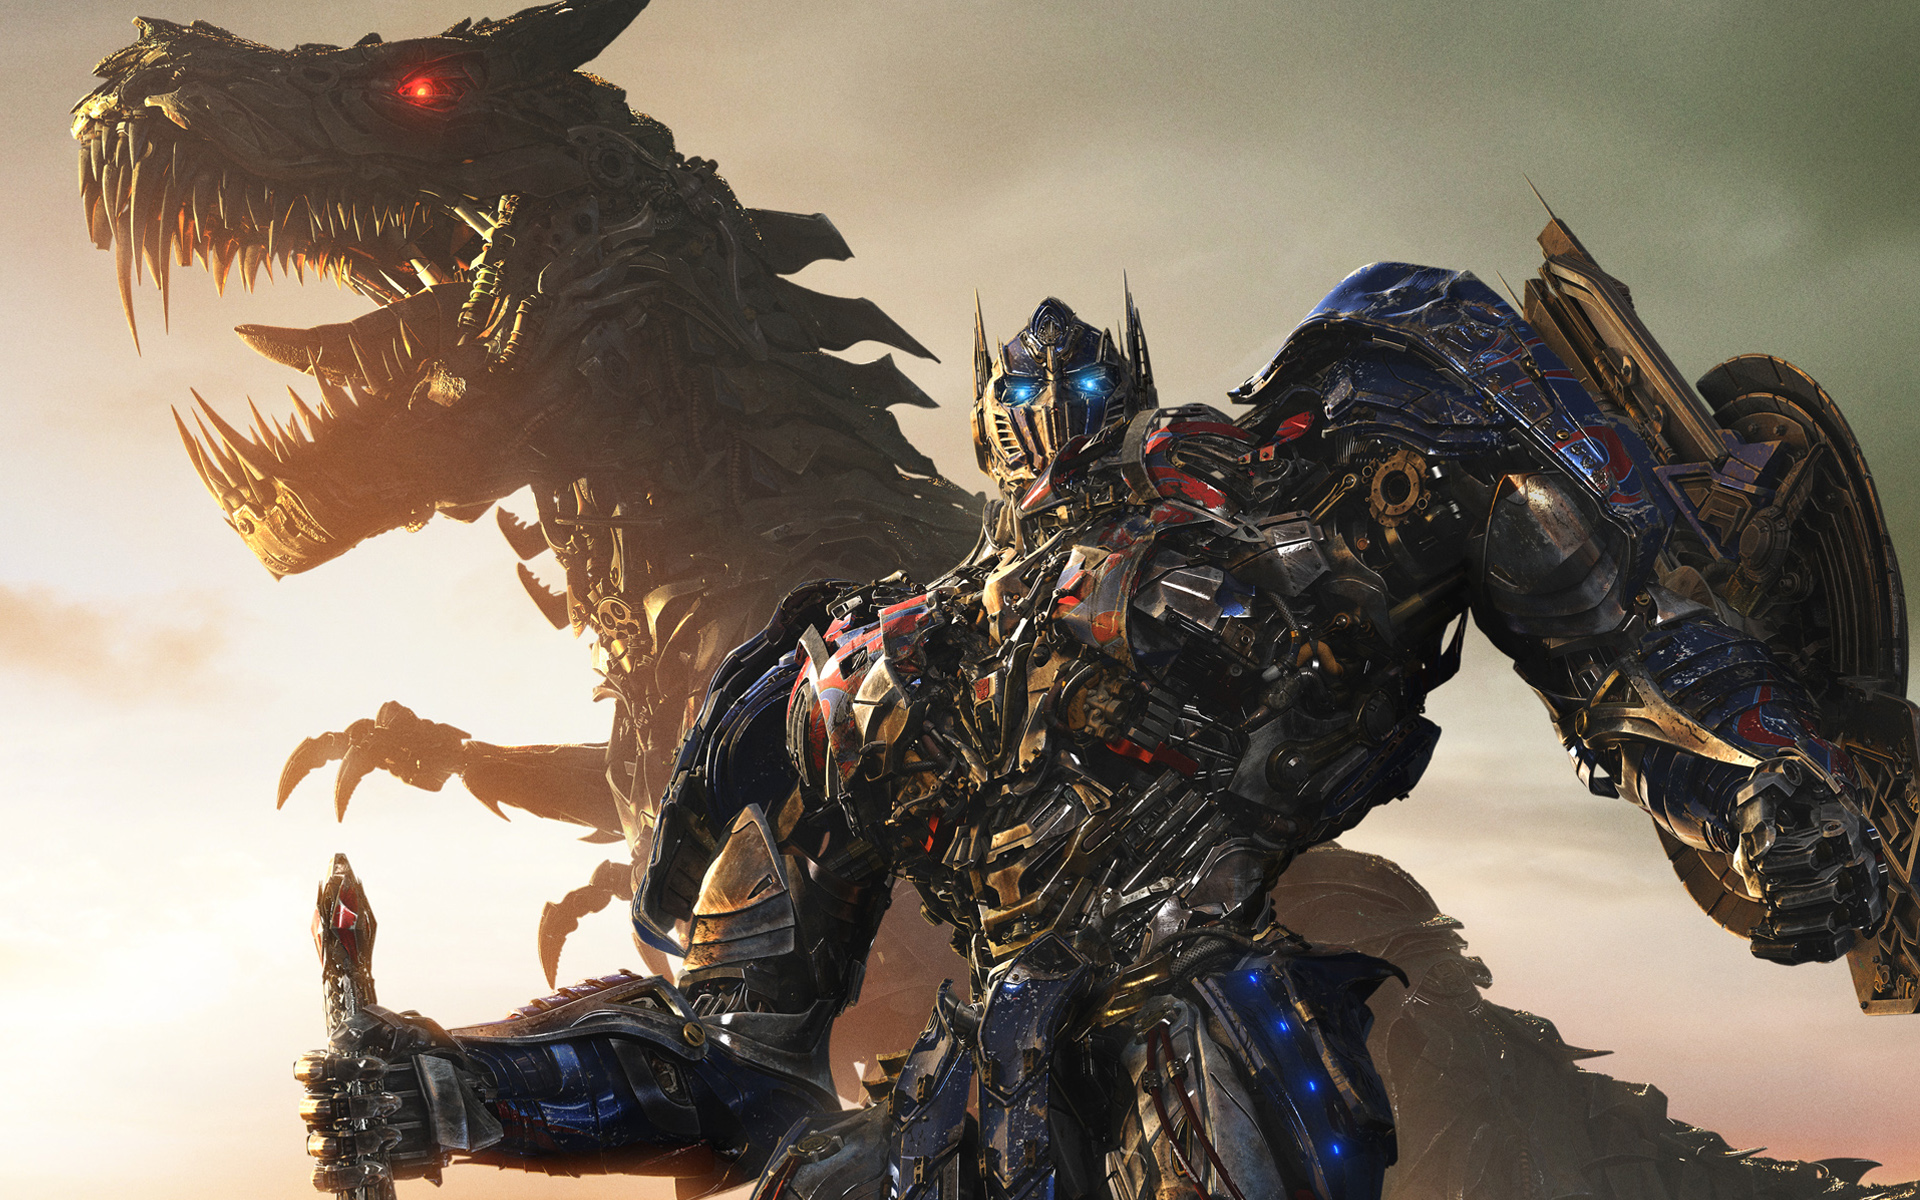 HD Wallpapers Transformers Age of Extinction IMAX Poster